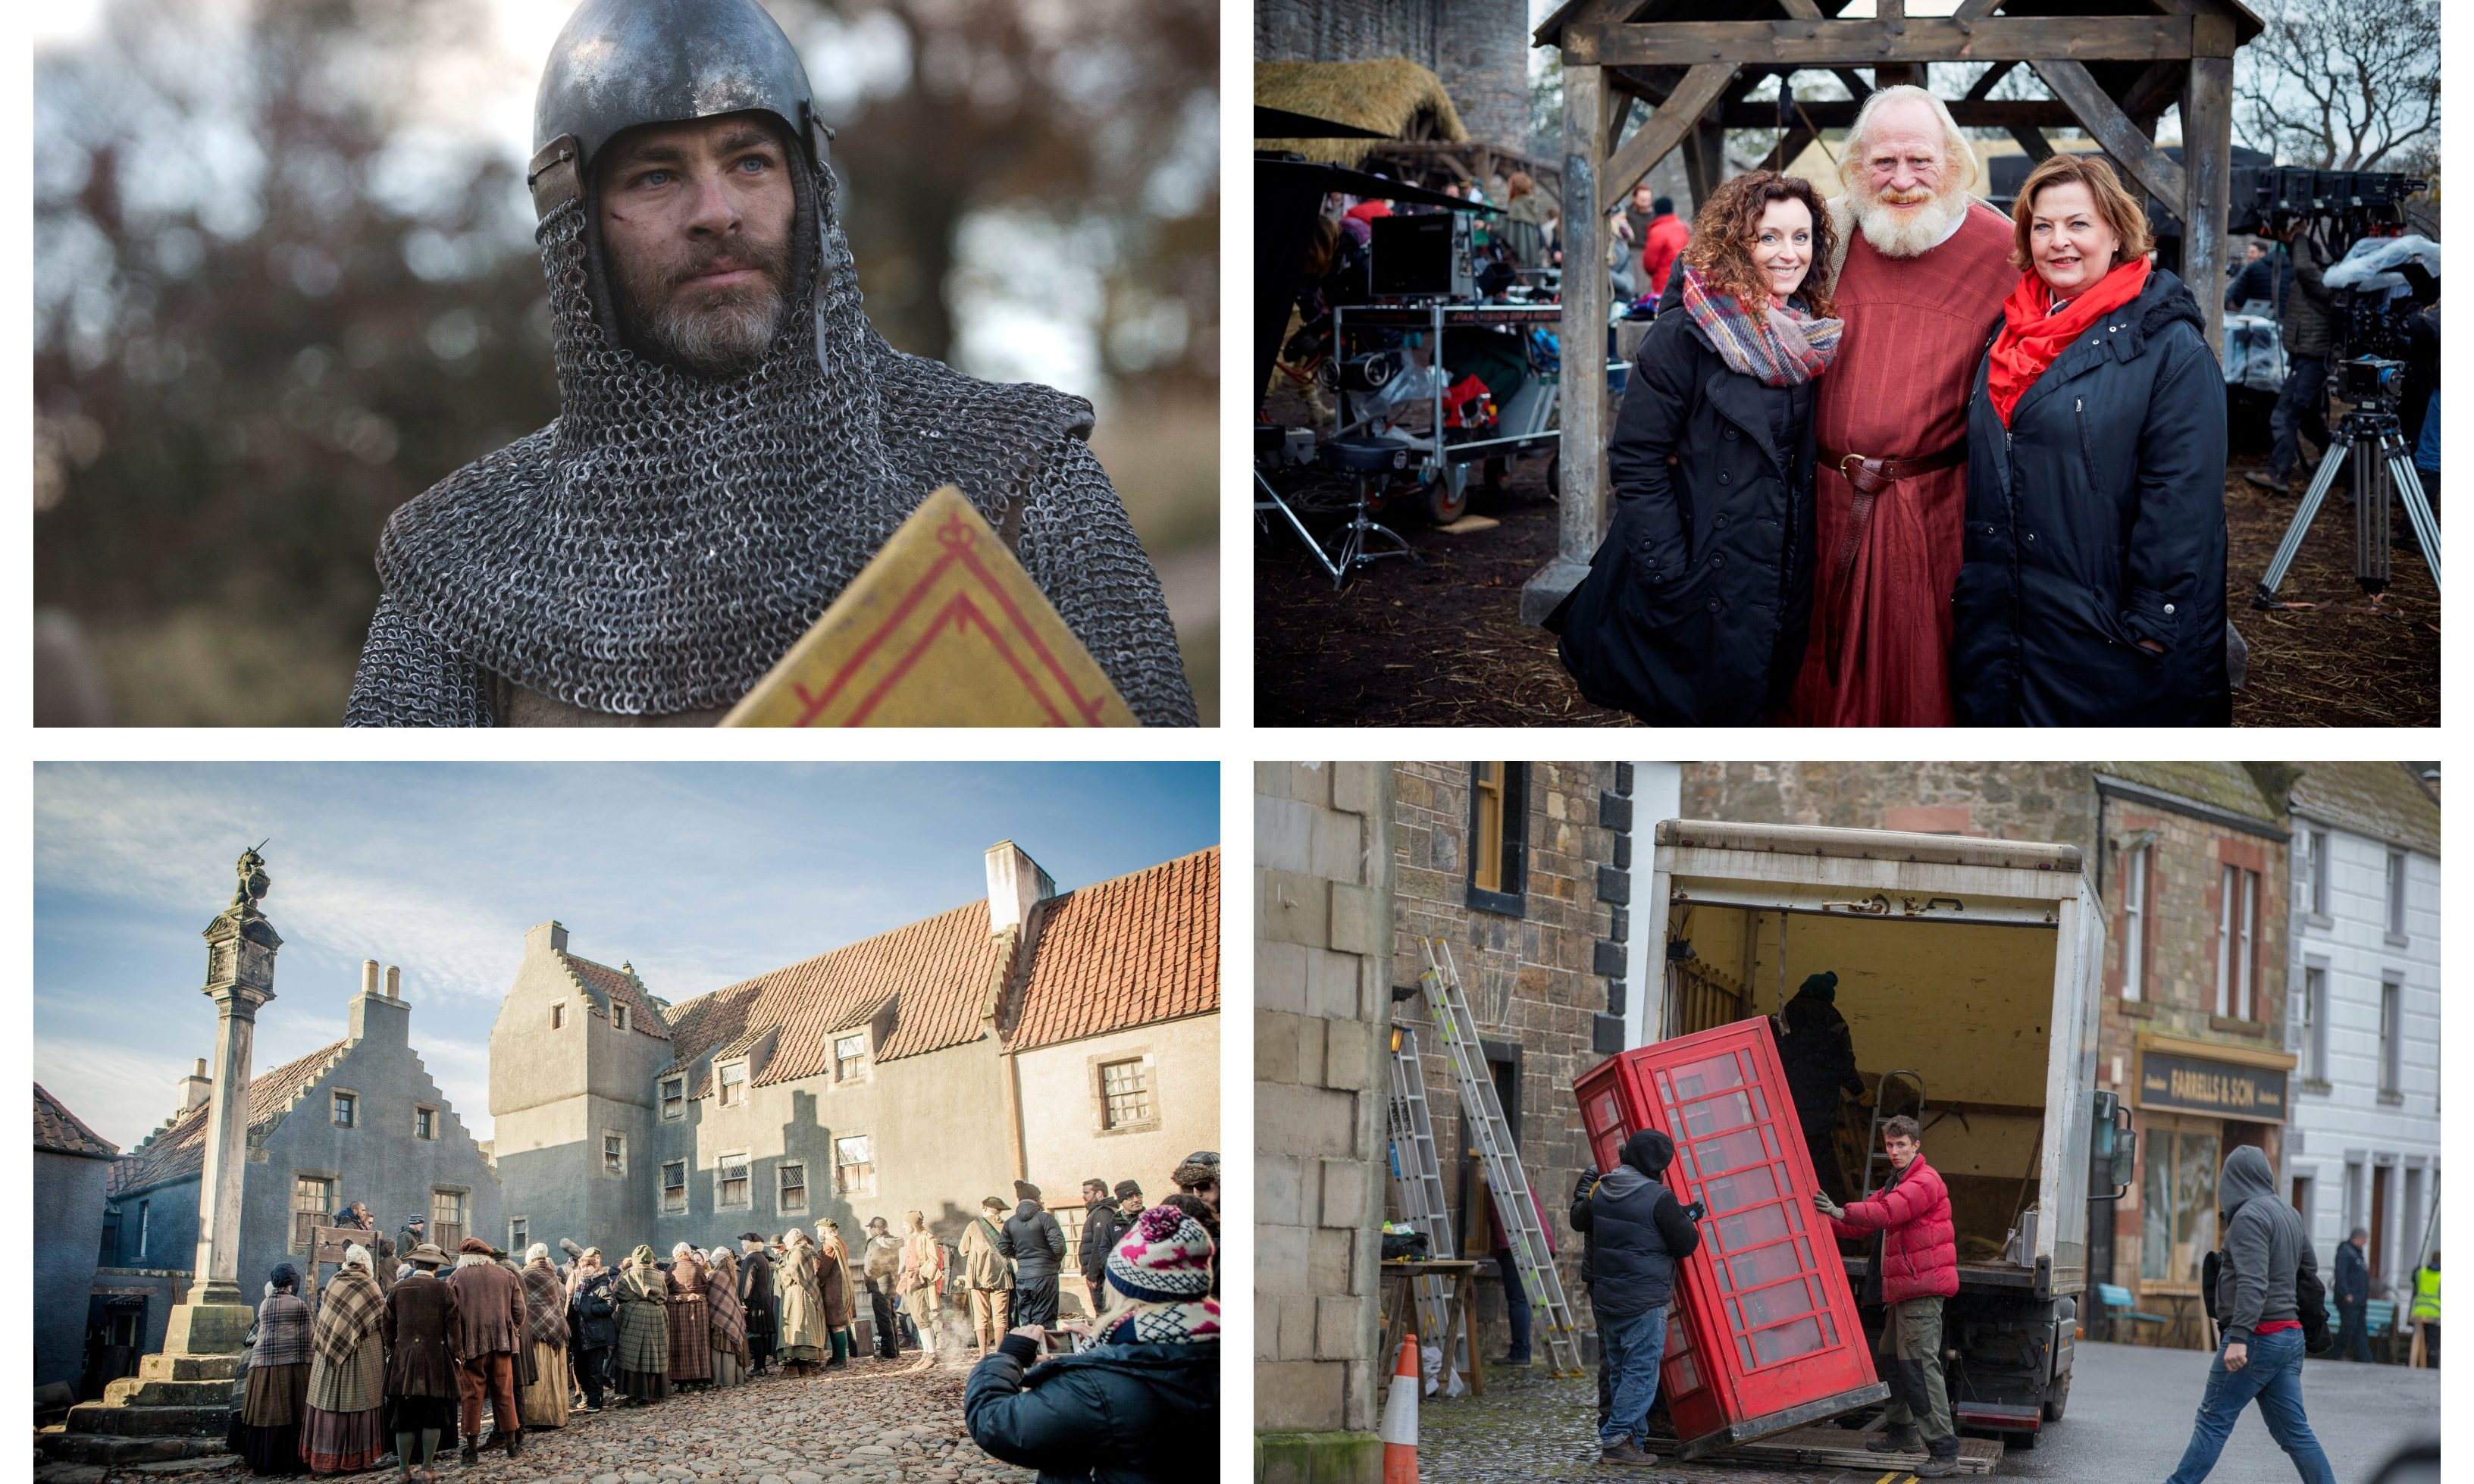 Filming of both Outlaw King and Outlander took place in Tayside and Fife.